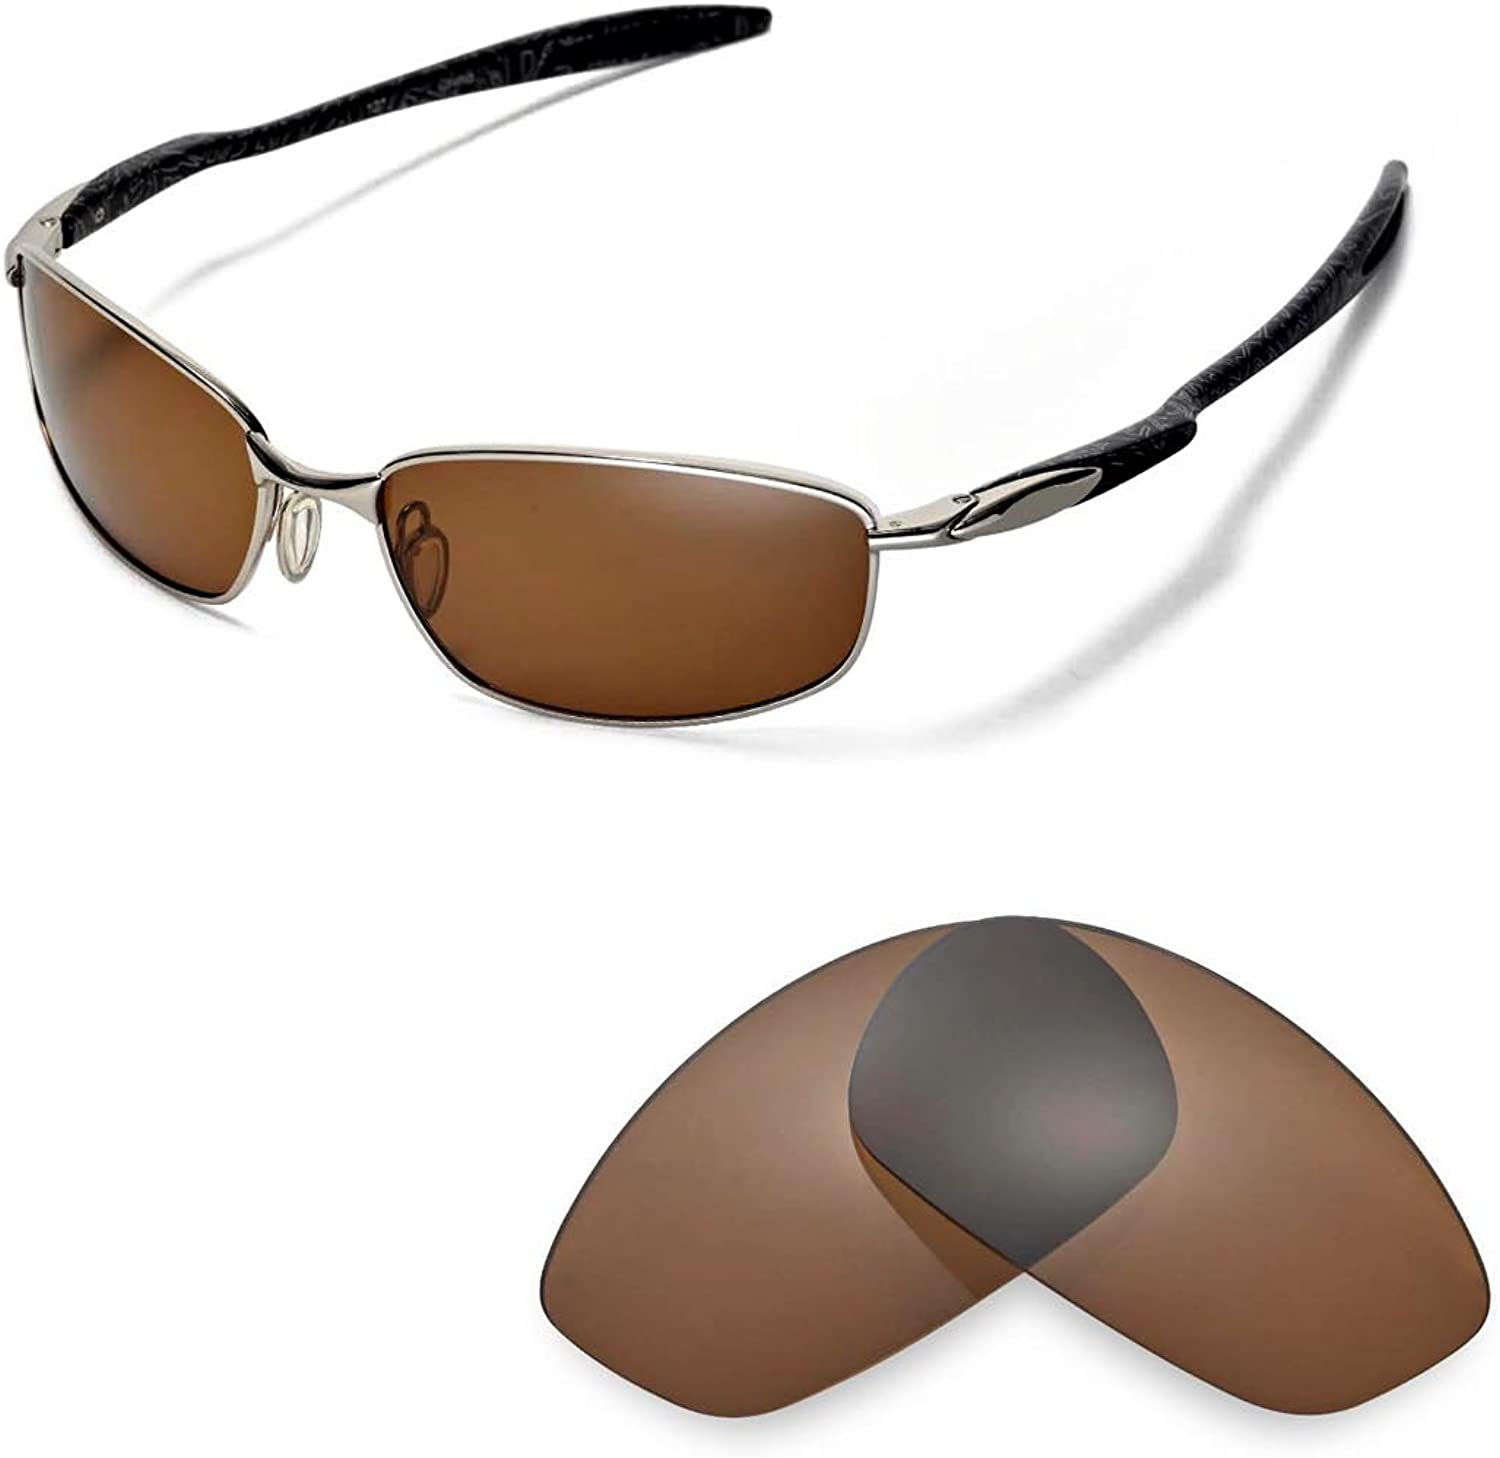 Walleva Replacement Lenses for Oakley Blender Sunglasses - 9 Options Available